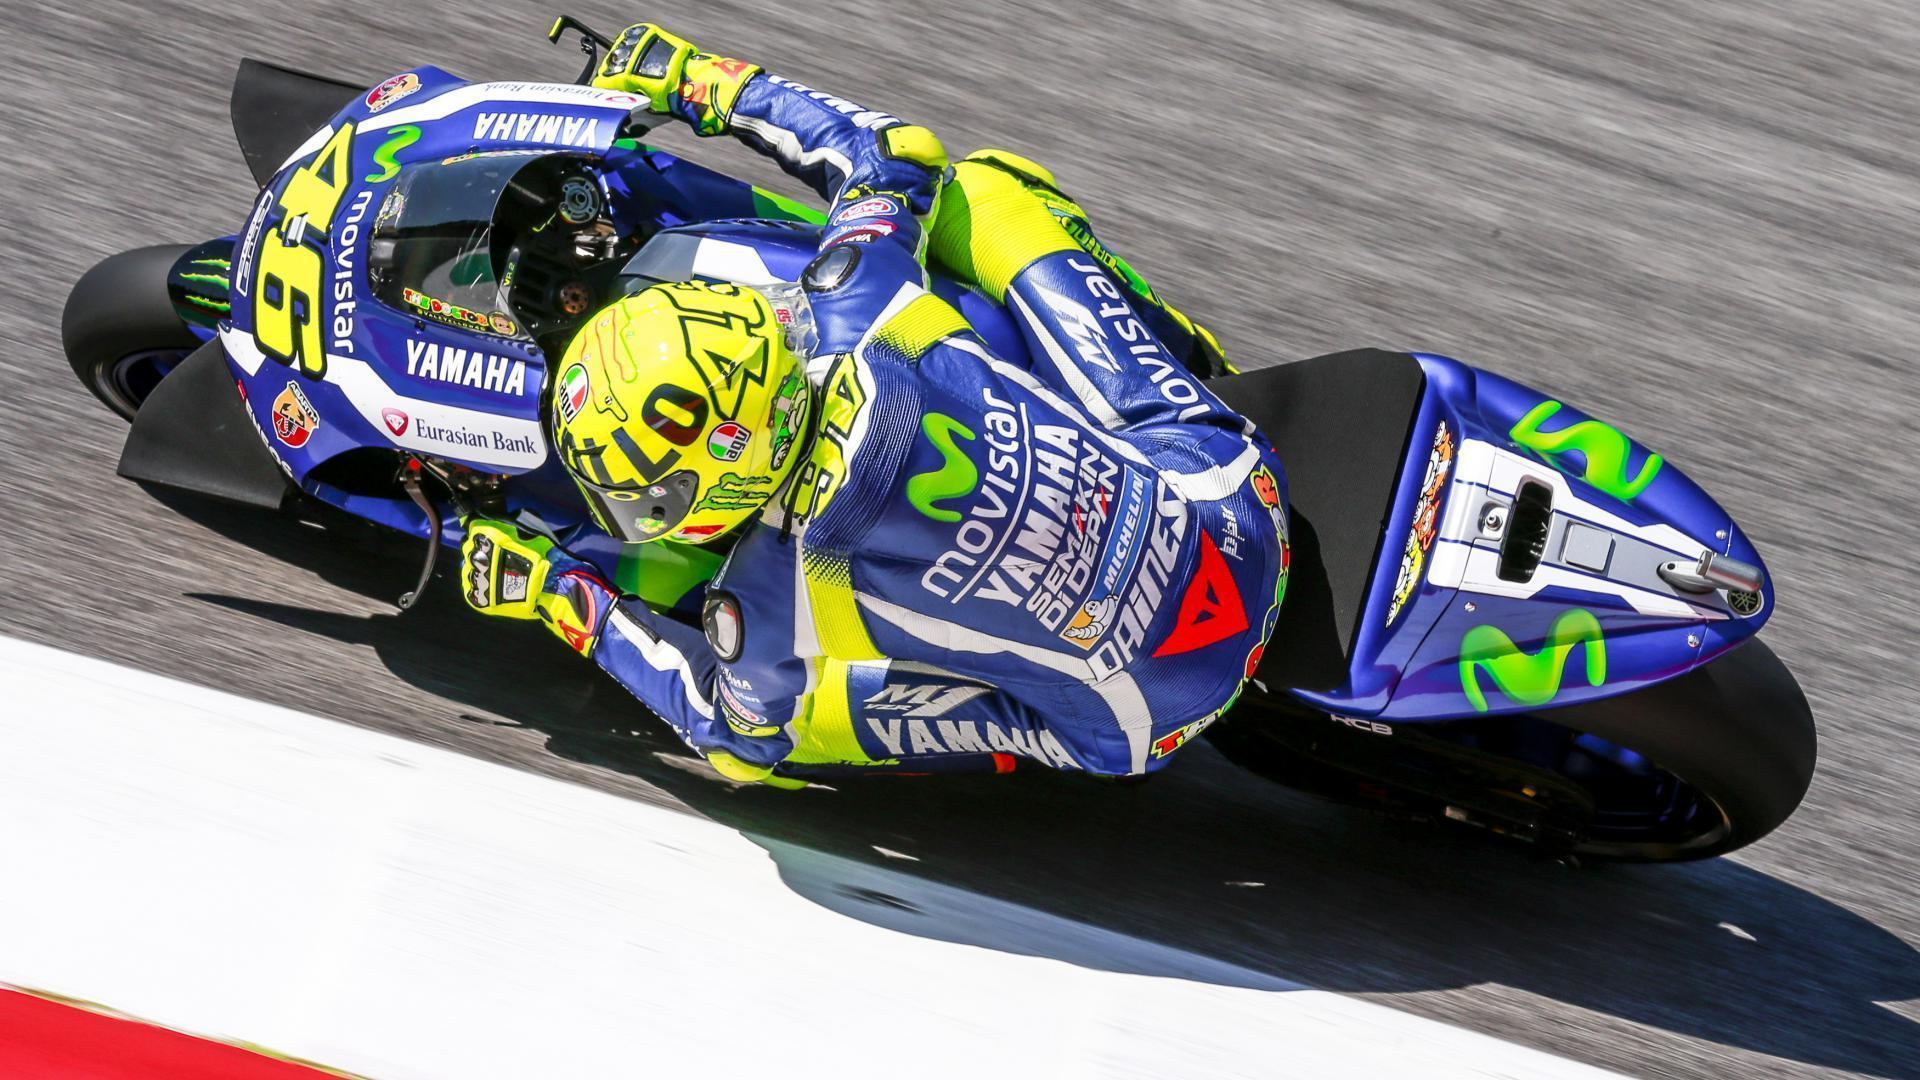 Vr 46 Valentino Rossi #mugiallo | Best Wallpapers